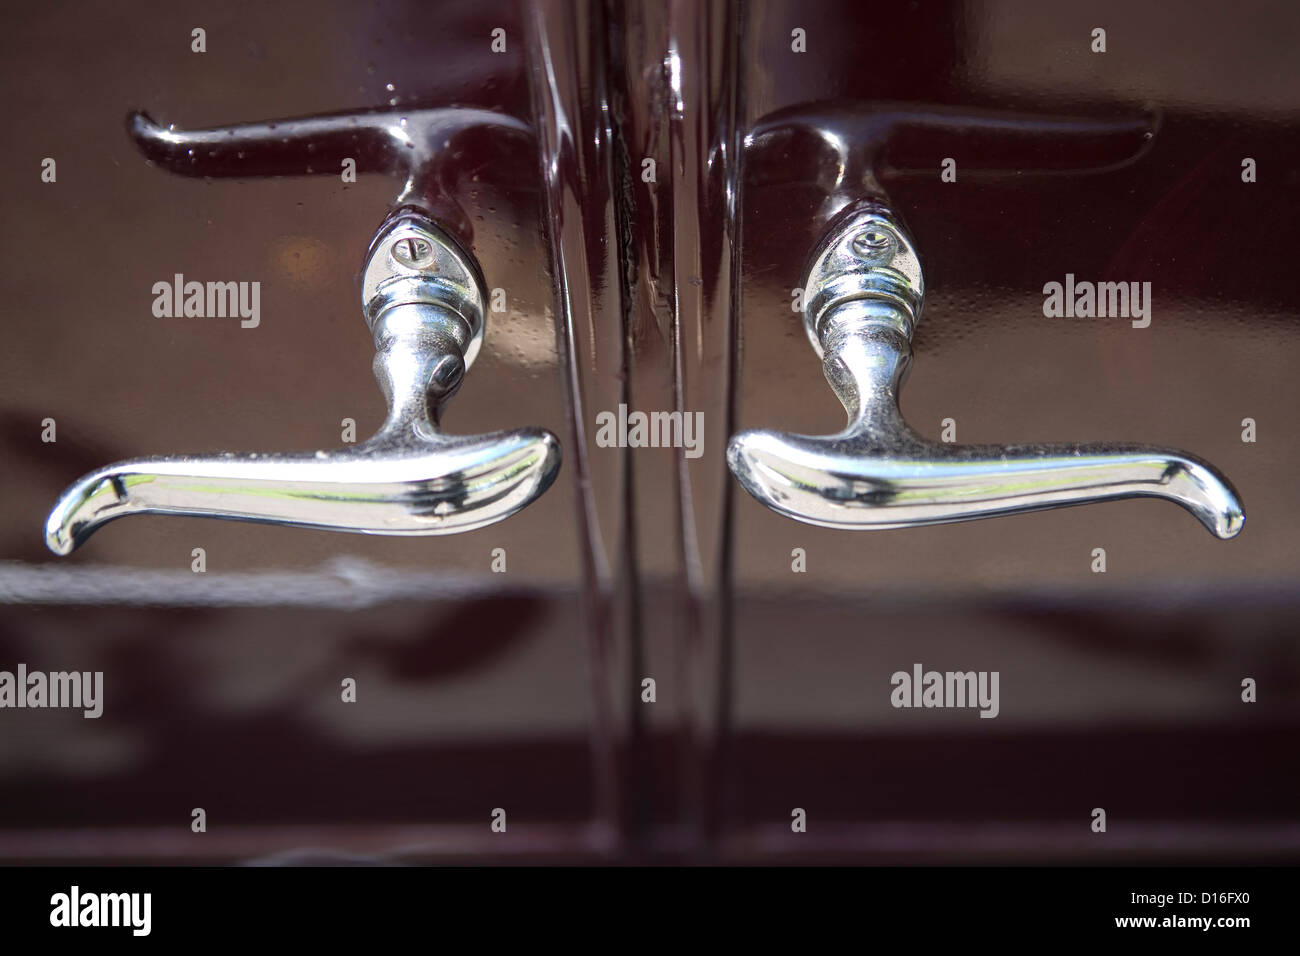 Chrome door handles on the side of a vintage car. - Stock Image